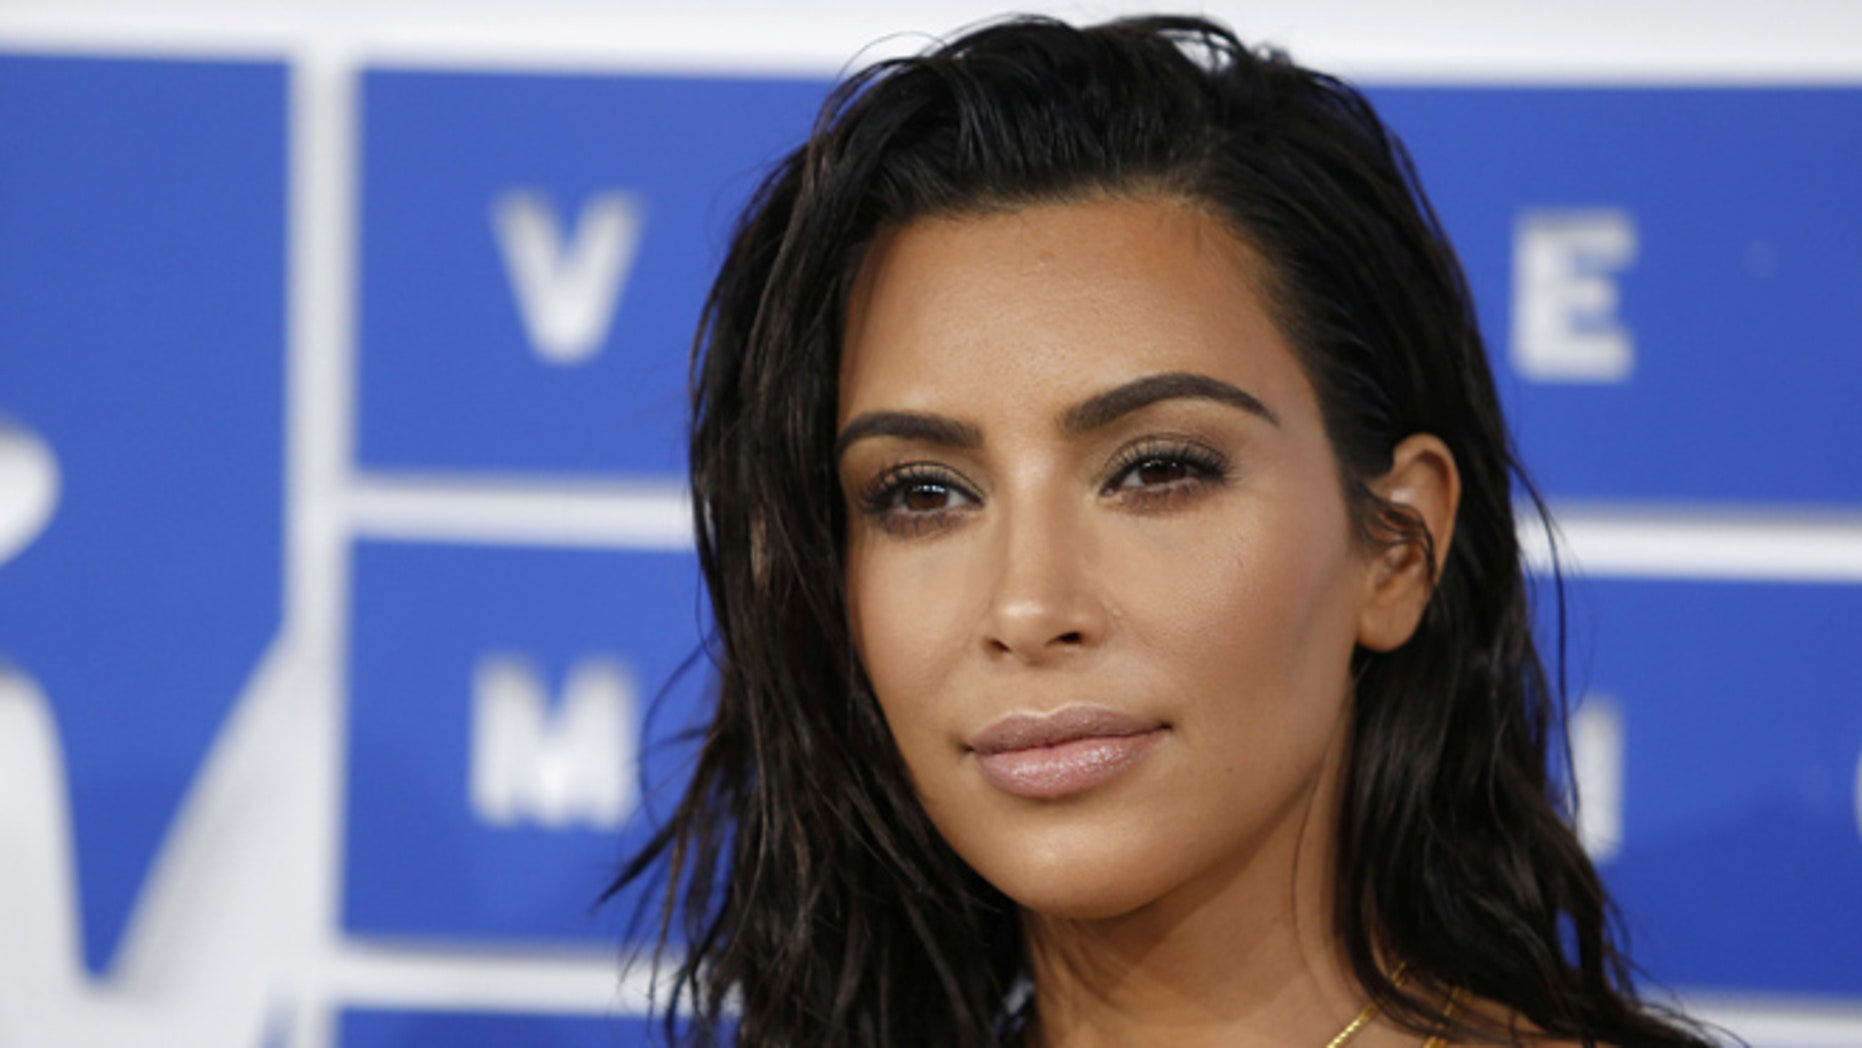 Why Kim Kardashian fired her bodyguard.